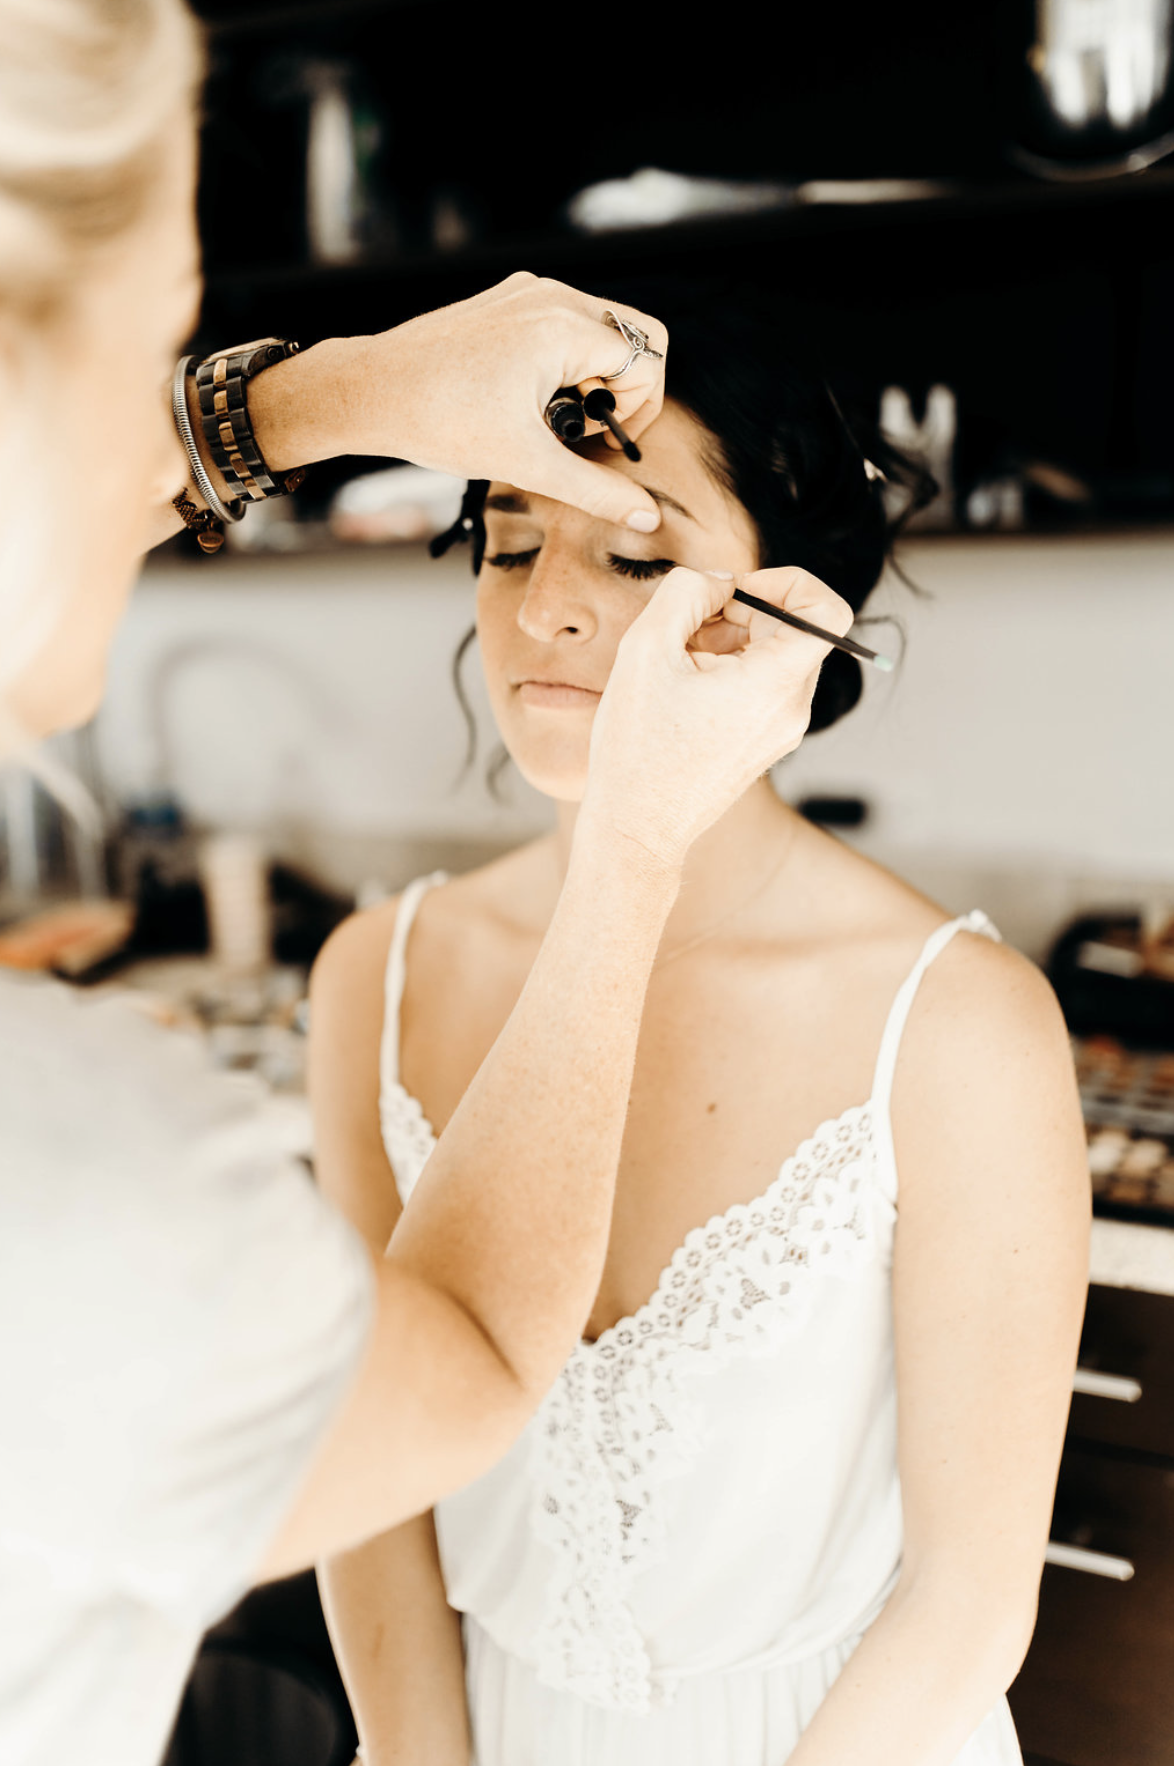 Valerie-and-TJ-McConnell-Wedding-Coordination-by-Cassandra-Clair-Event-Prep-2